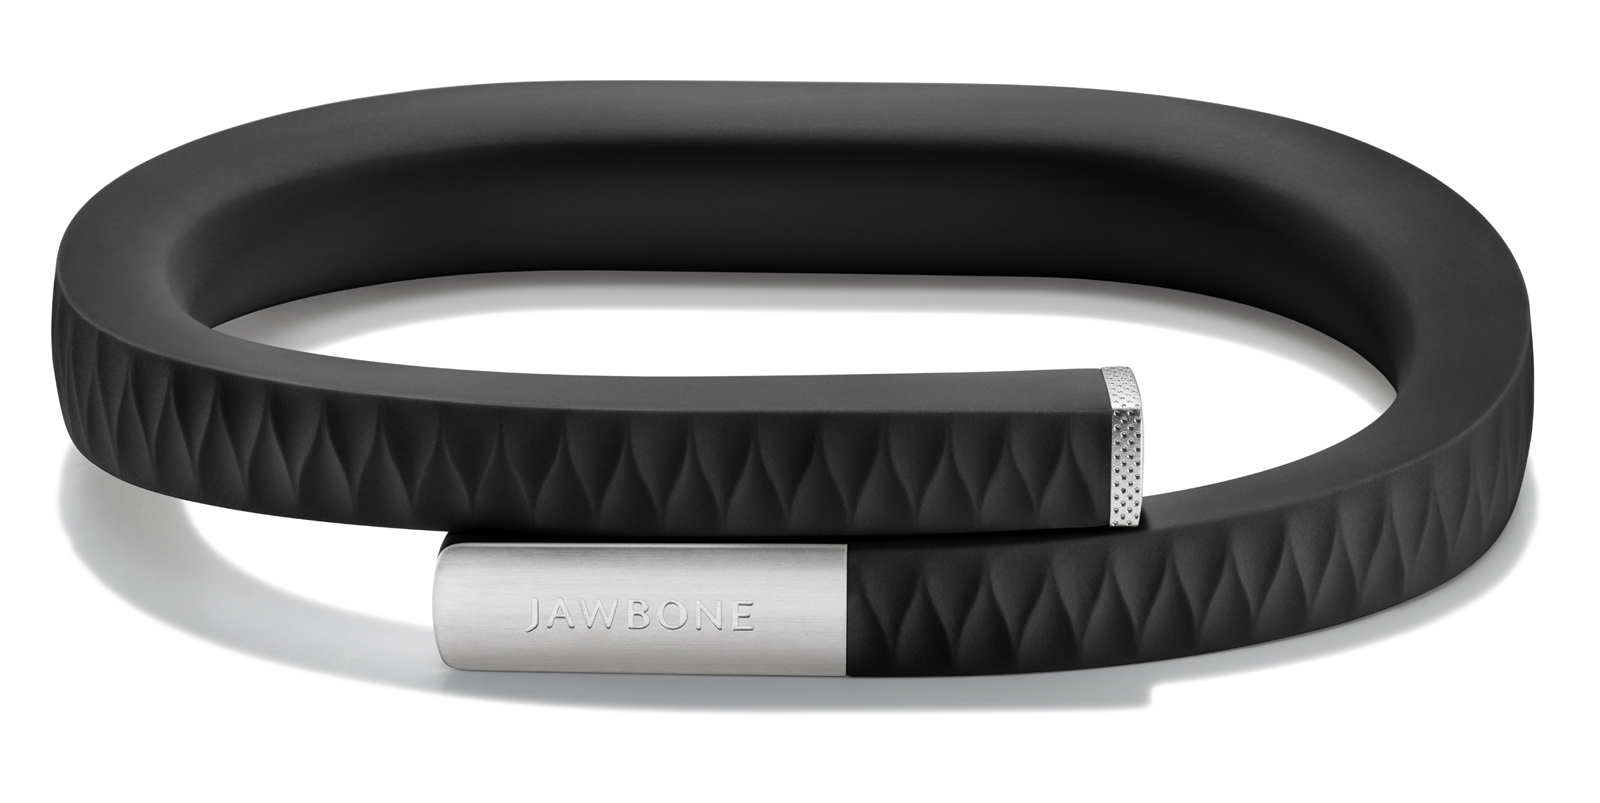 up-by-jawbone-lowres-005